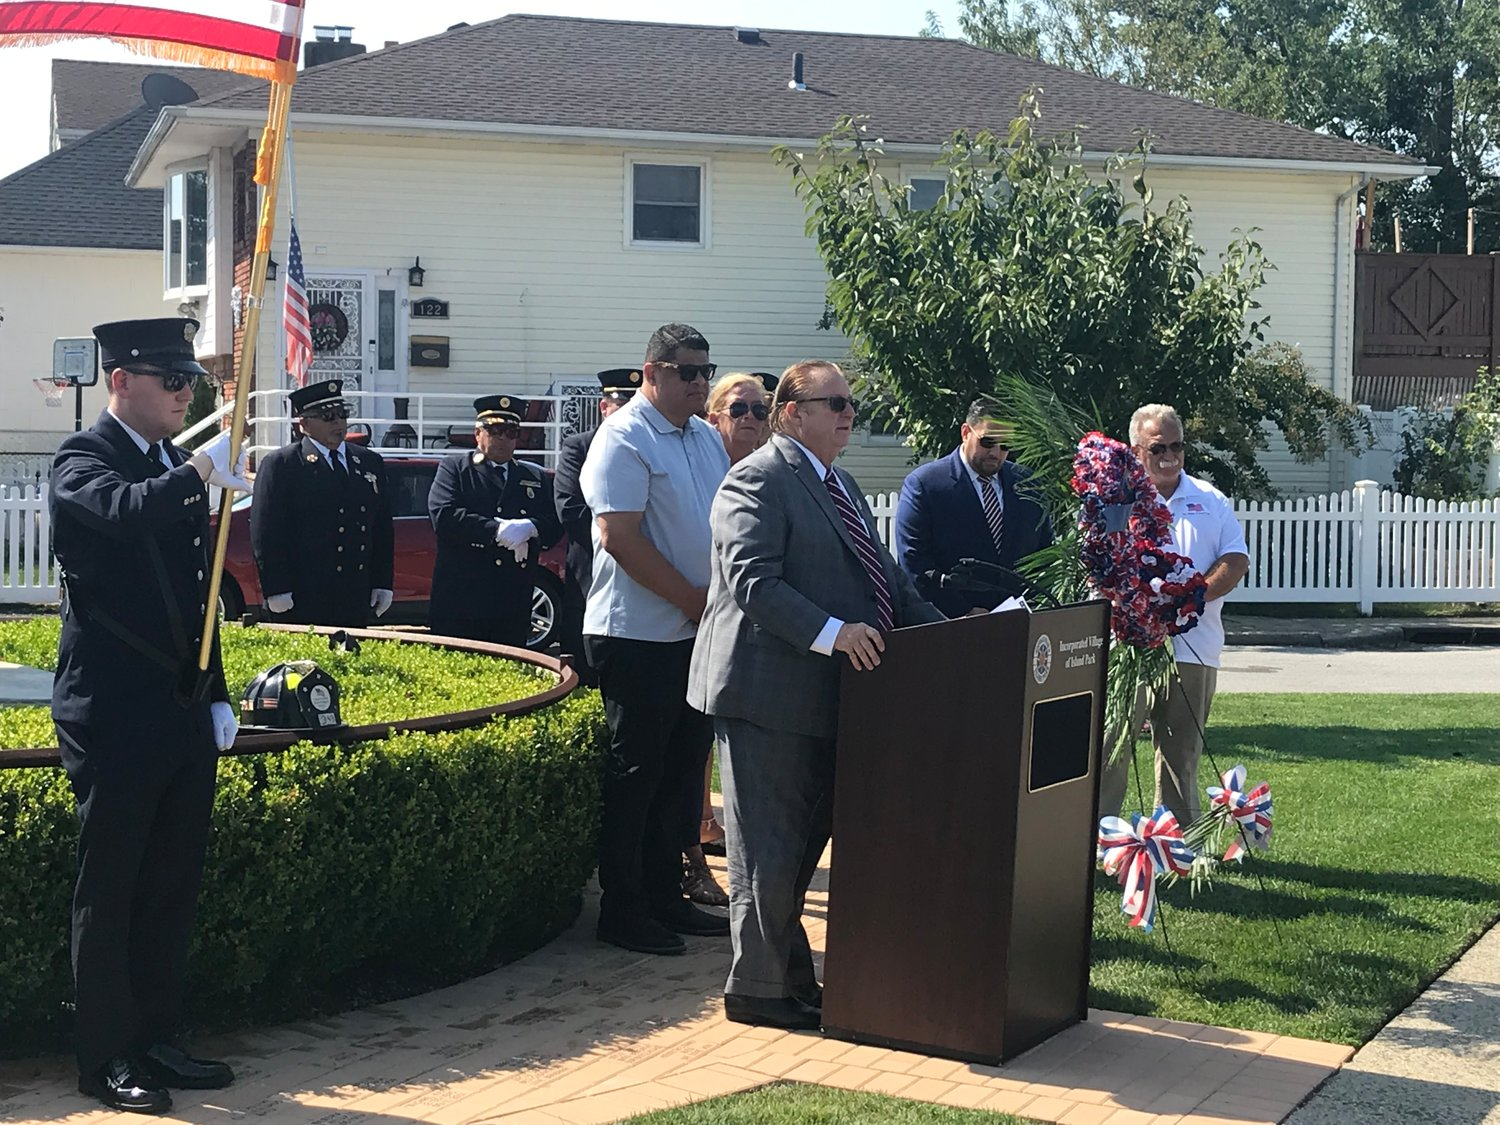 The Village of Island Park hosted a 9/11 memorial ceremony on the 18th anniversary of the attacks at the memorial on Long Beach and Parma roads. Mayor Michael McGinty addressed attendees.